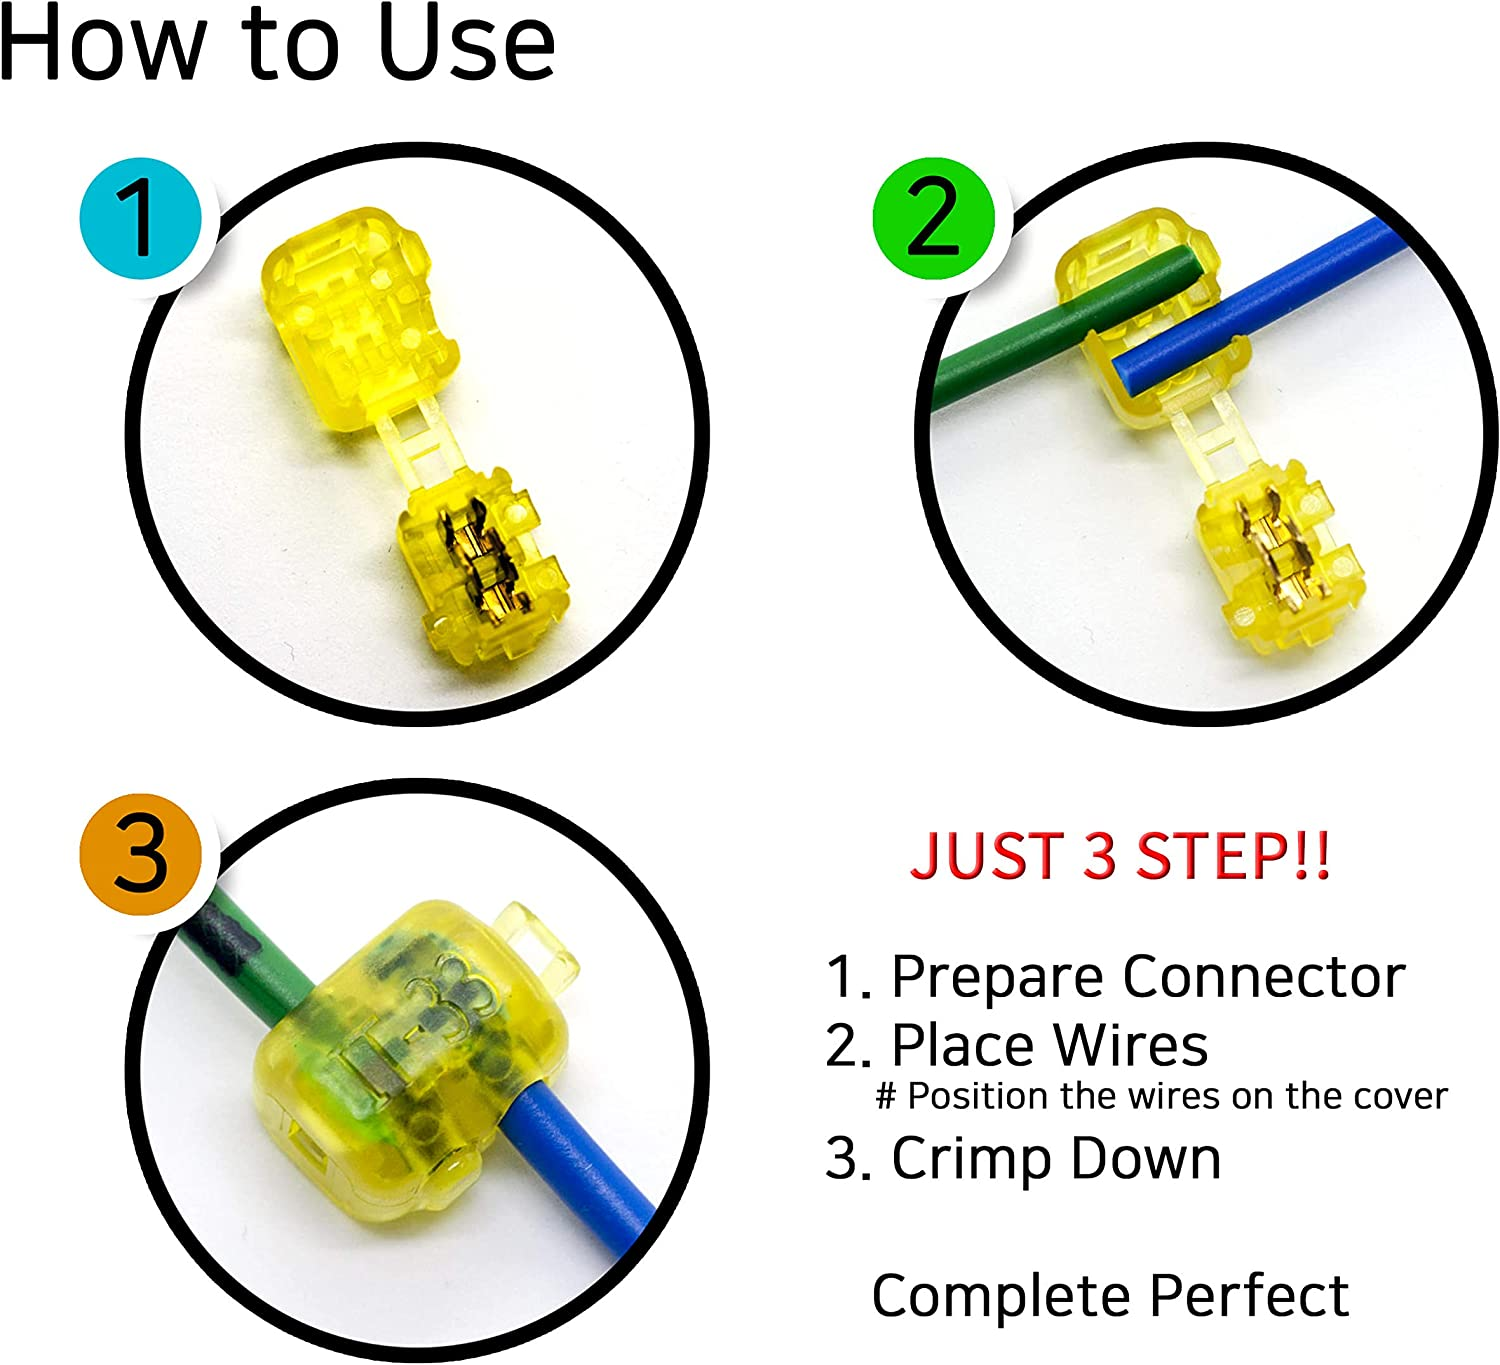 branch electrical wire connector//wire nuts Branch /& Junction IT-55, 100PCS terminal connector//One-to-One t tap AlphaO Quick Splice Connector